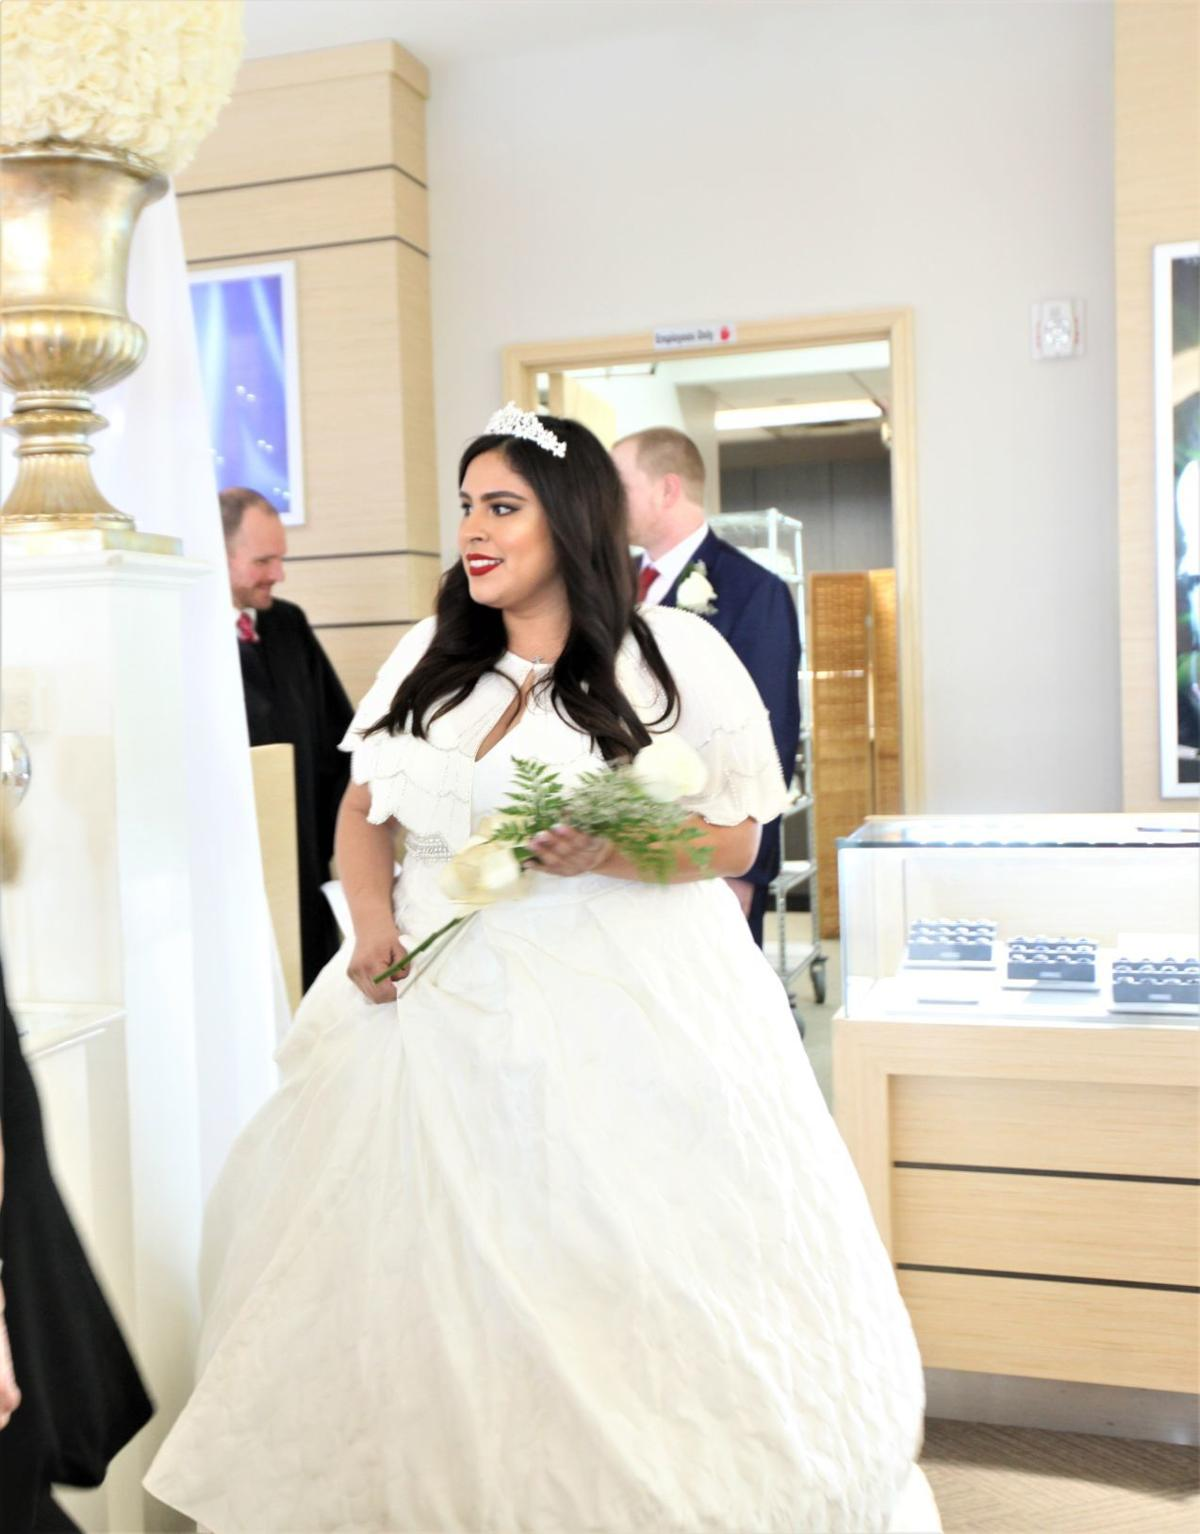 19 couples walk down the aisle at Albert's Diamond Jewelers on Valentine's Day